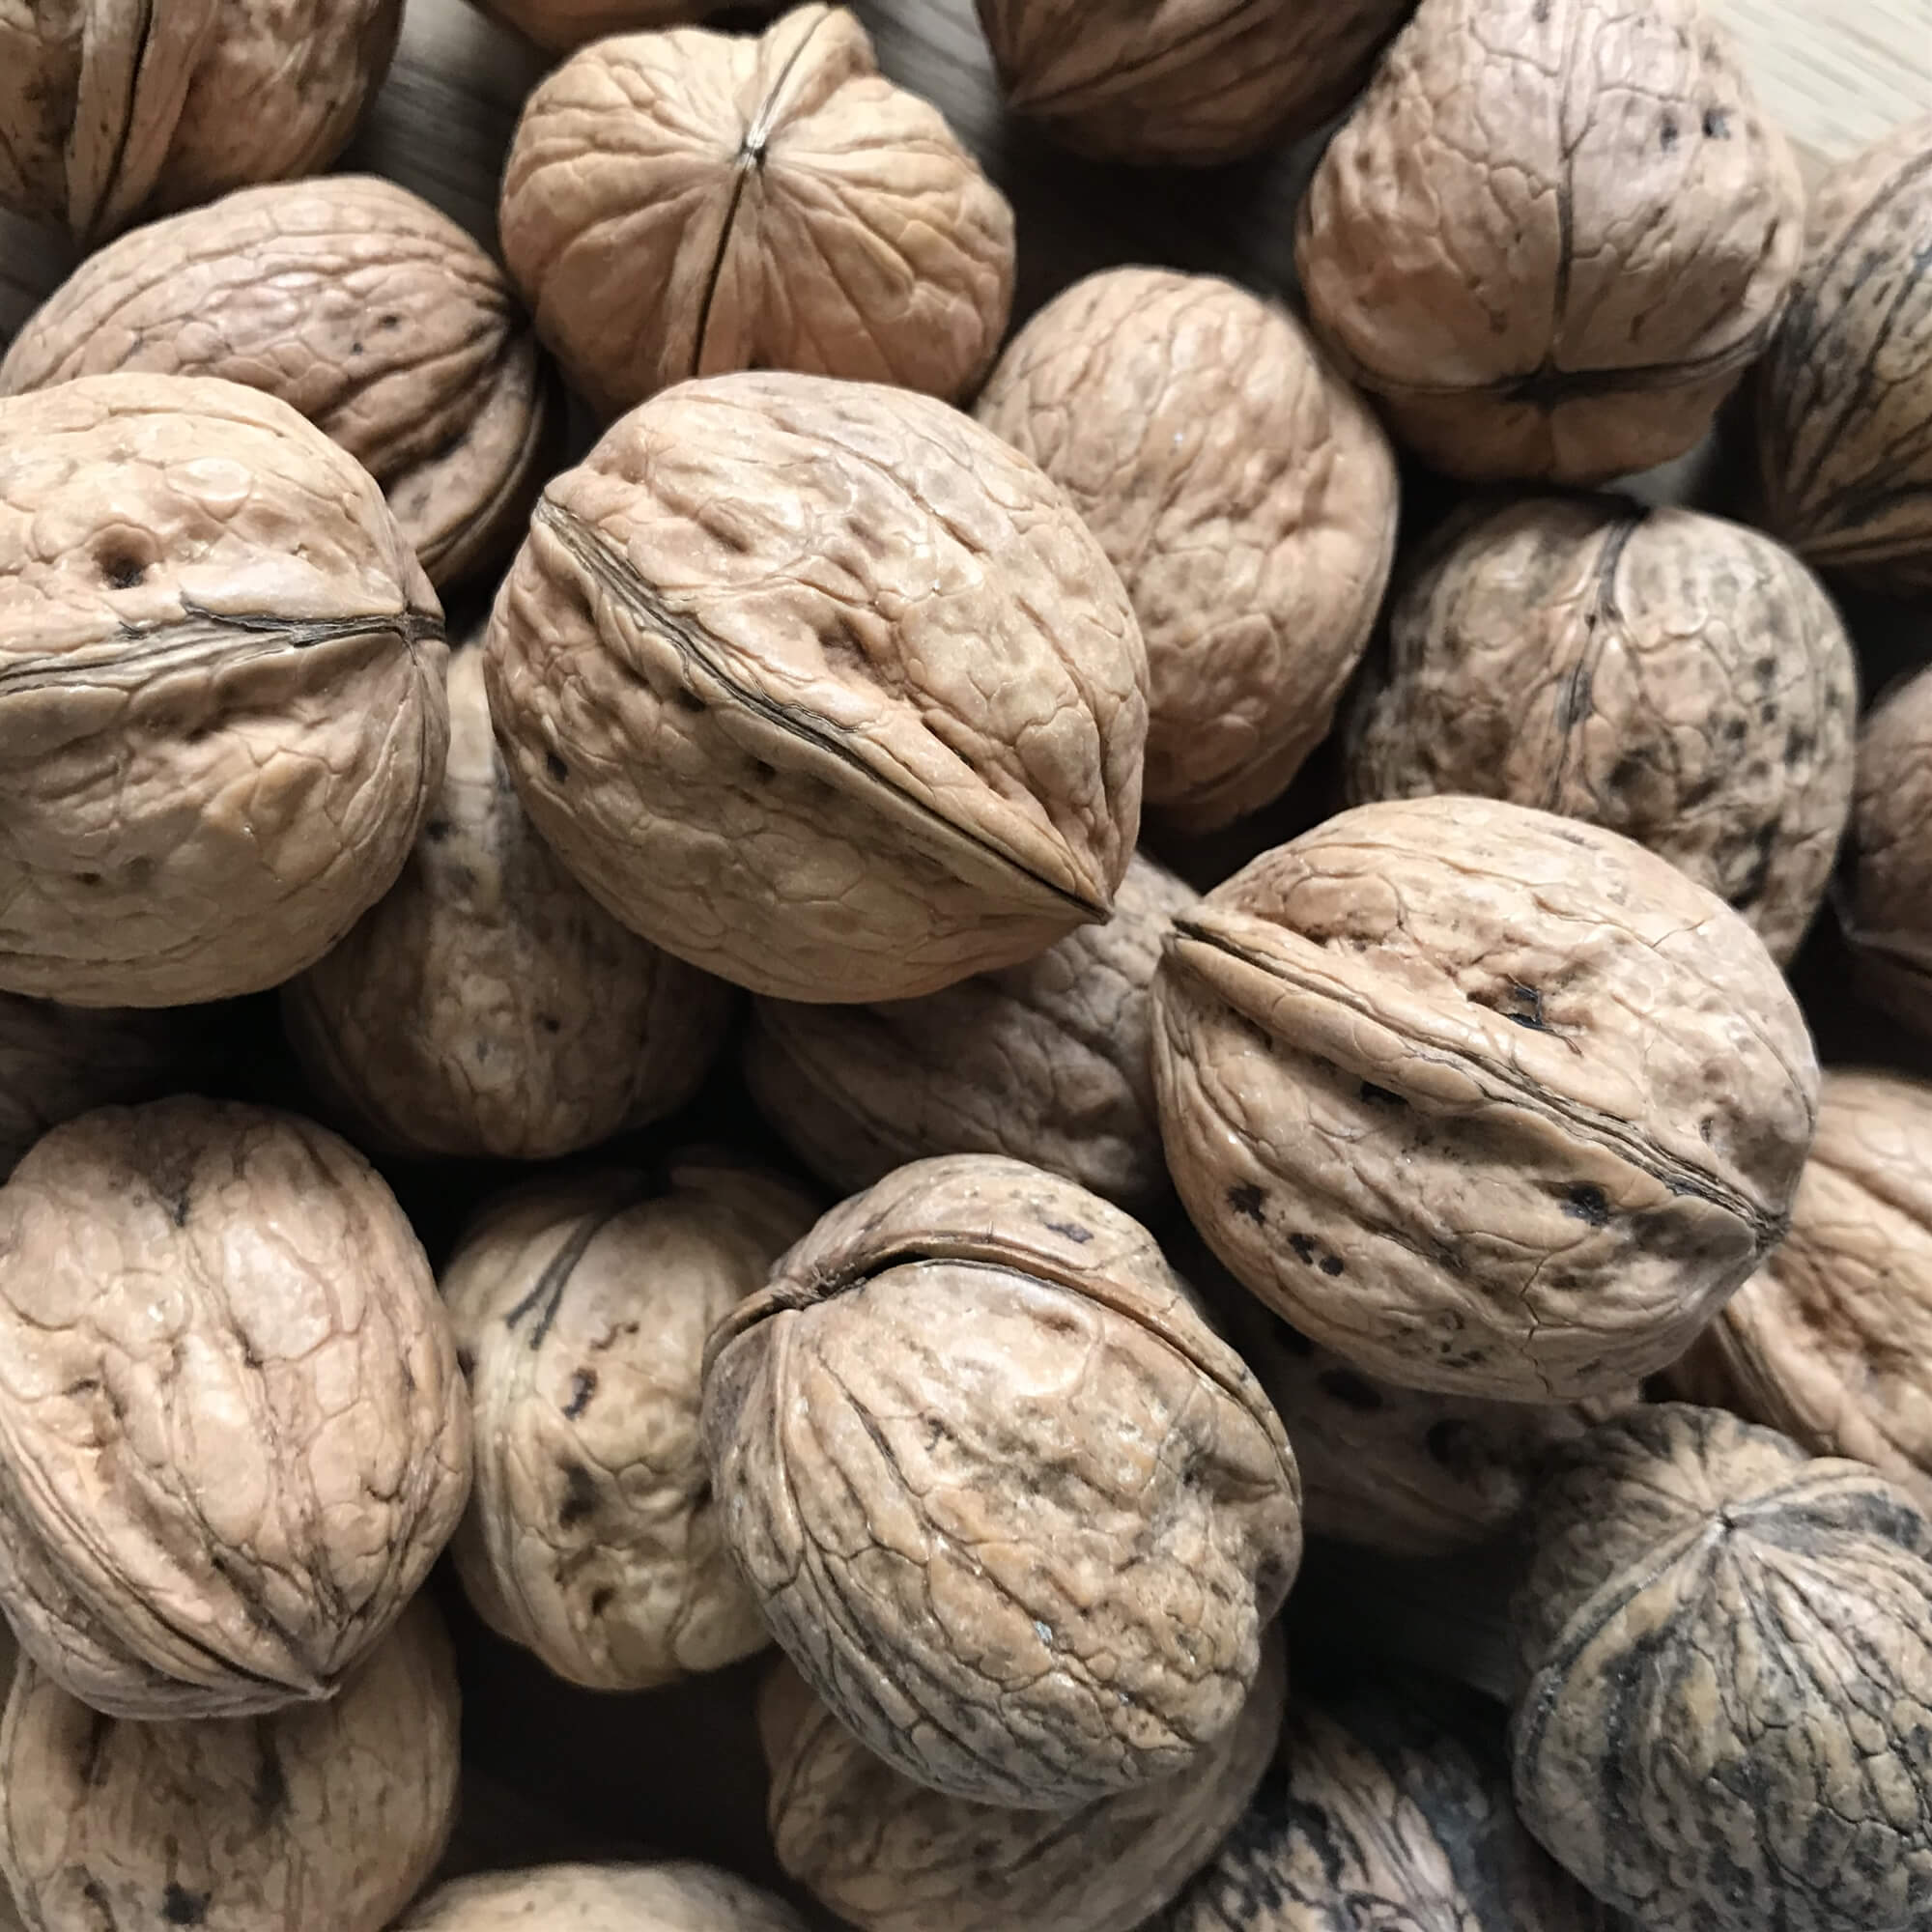 Walnuts - A Walnut is an edible nut often encased in a smooth green husk and mainly grown in California, France and Italy.